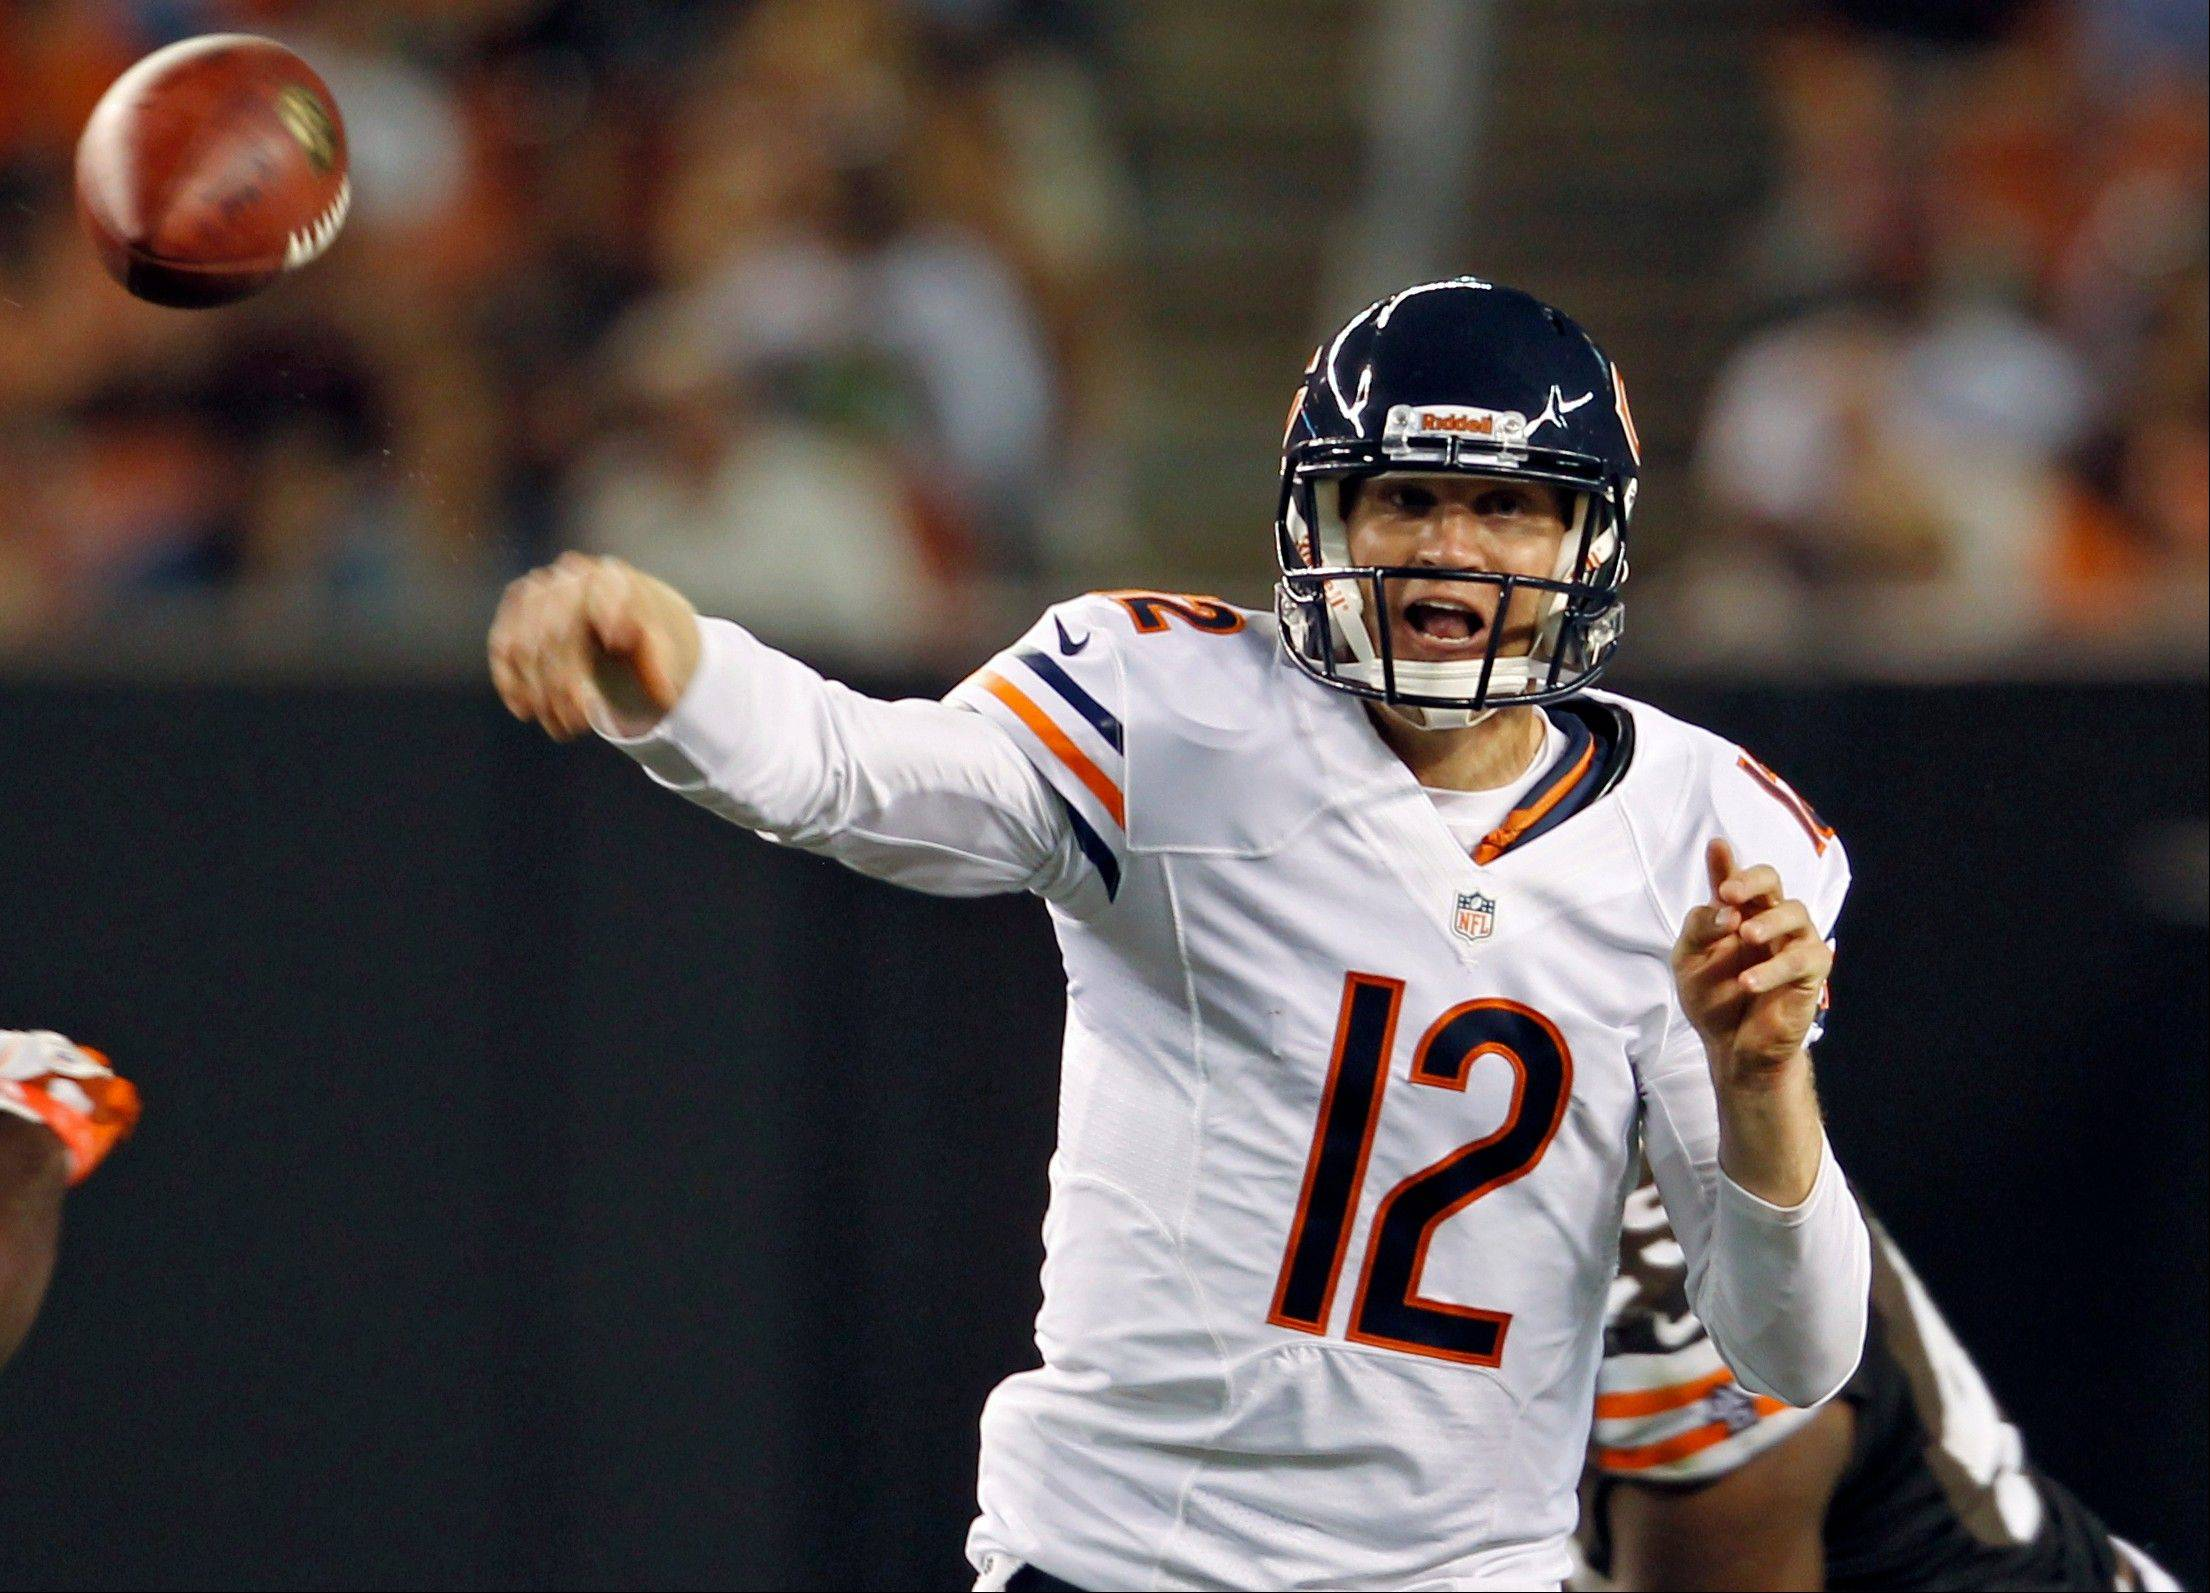 It appears the Chicago Bears will open the NFL season with two quarterbacks as the team waived third-string QB Josh McCown (12), who led them to a preseason win against the Cleveland Browns on Thursday.